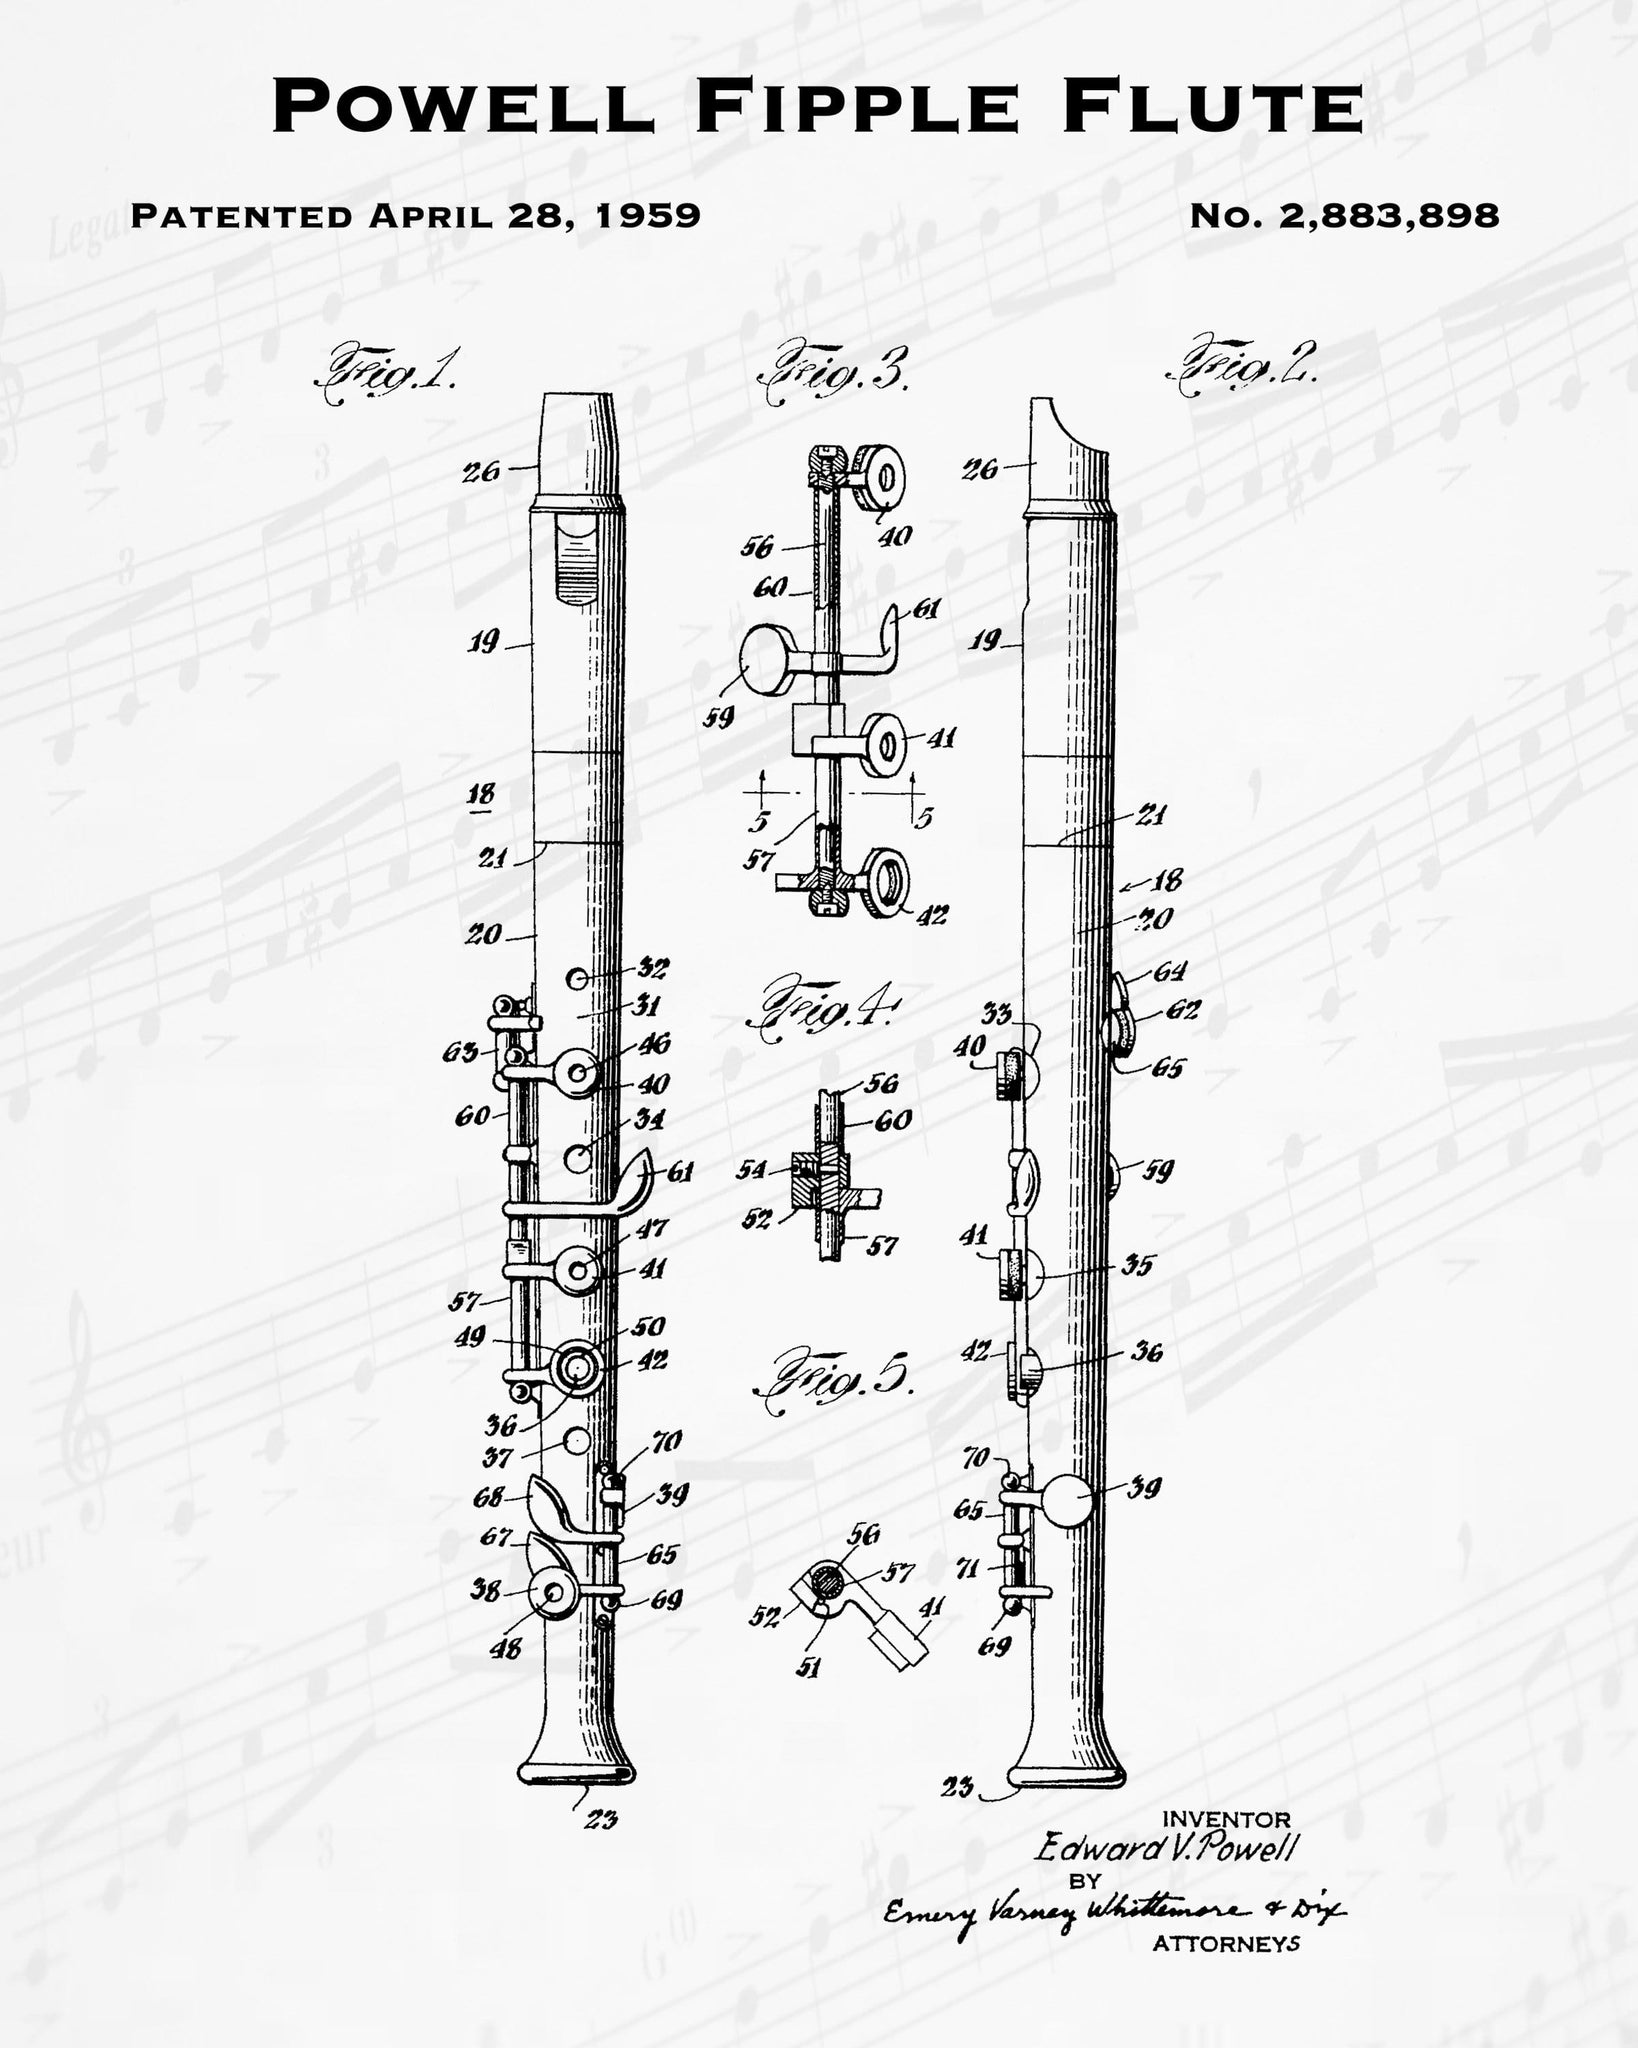 1959 Powell Fipple Flute Patent - 8X10 Digital Download Patent